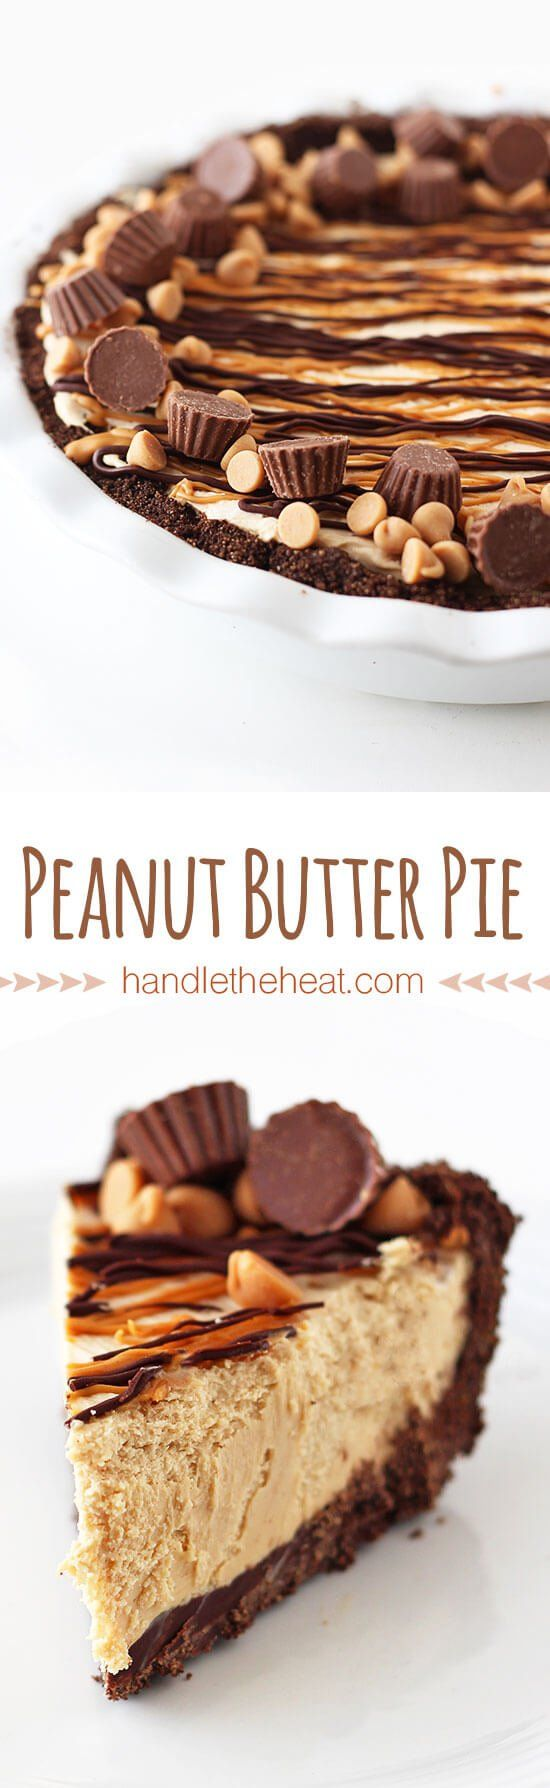 Peanut Butter Pie - Everyone wanted seconds! Love this peanut butter pie recipe.